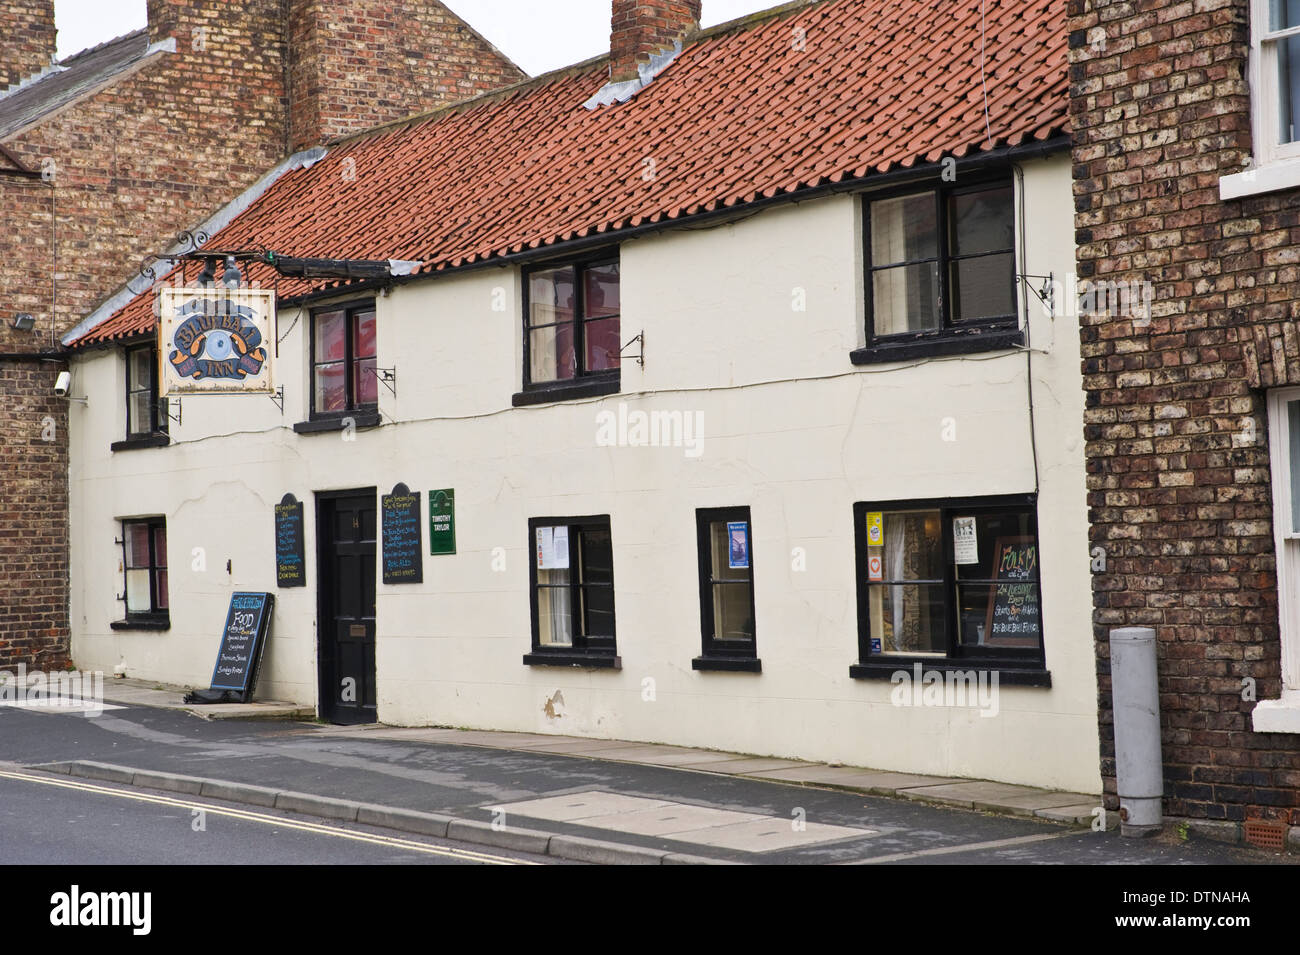 Exterior of The Blue Ball Inn pub in Malton North Yorkshire England UK - Stock Image